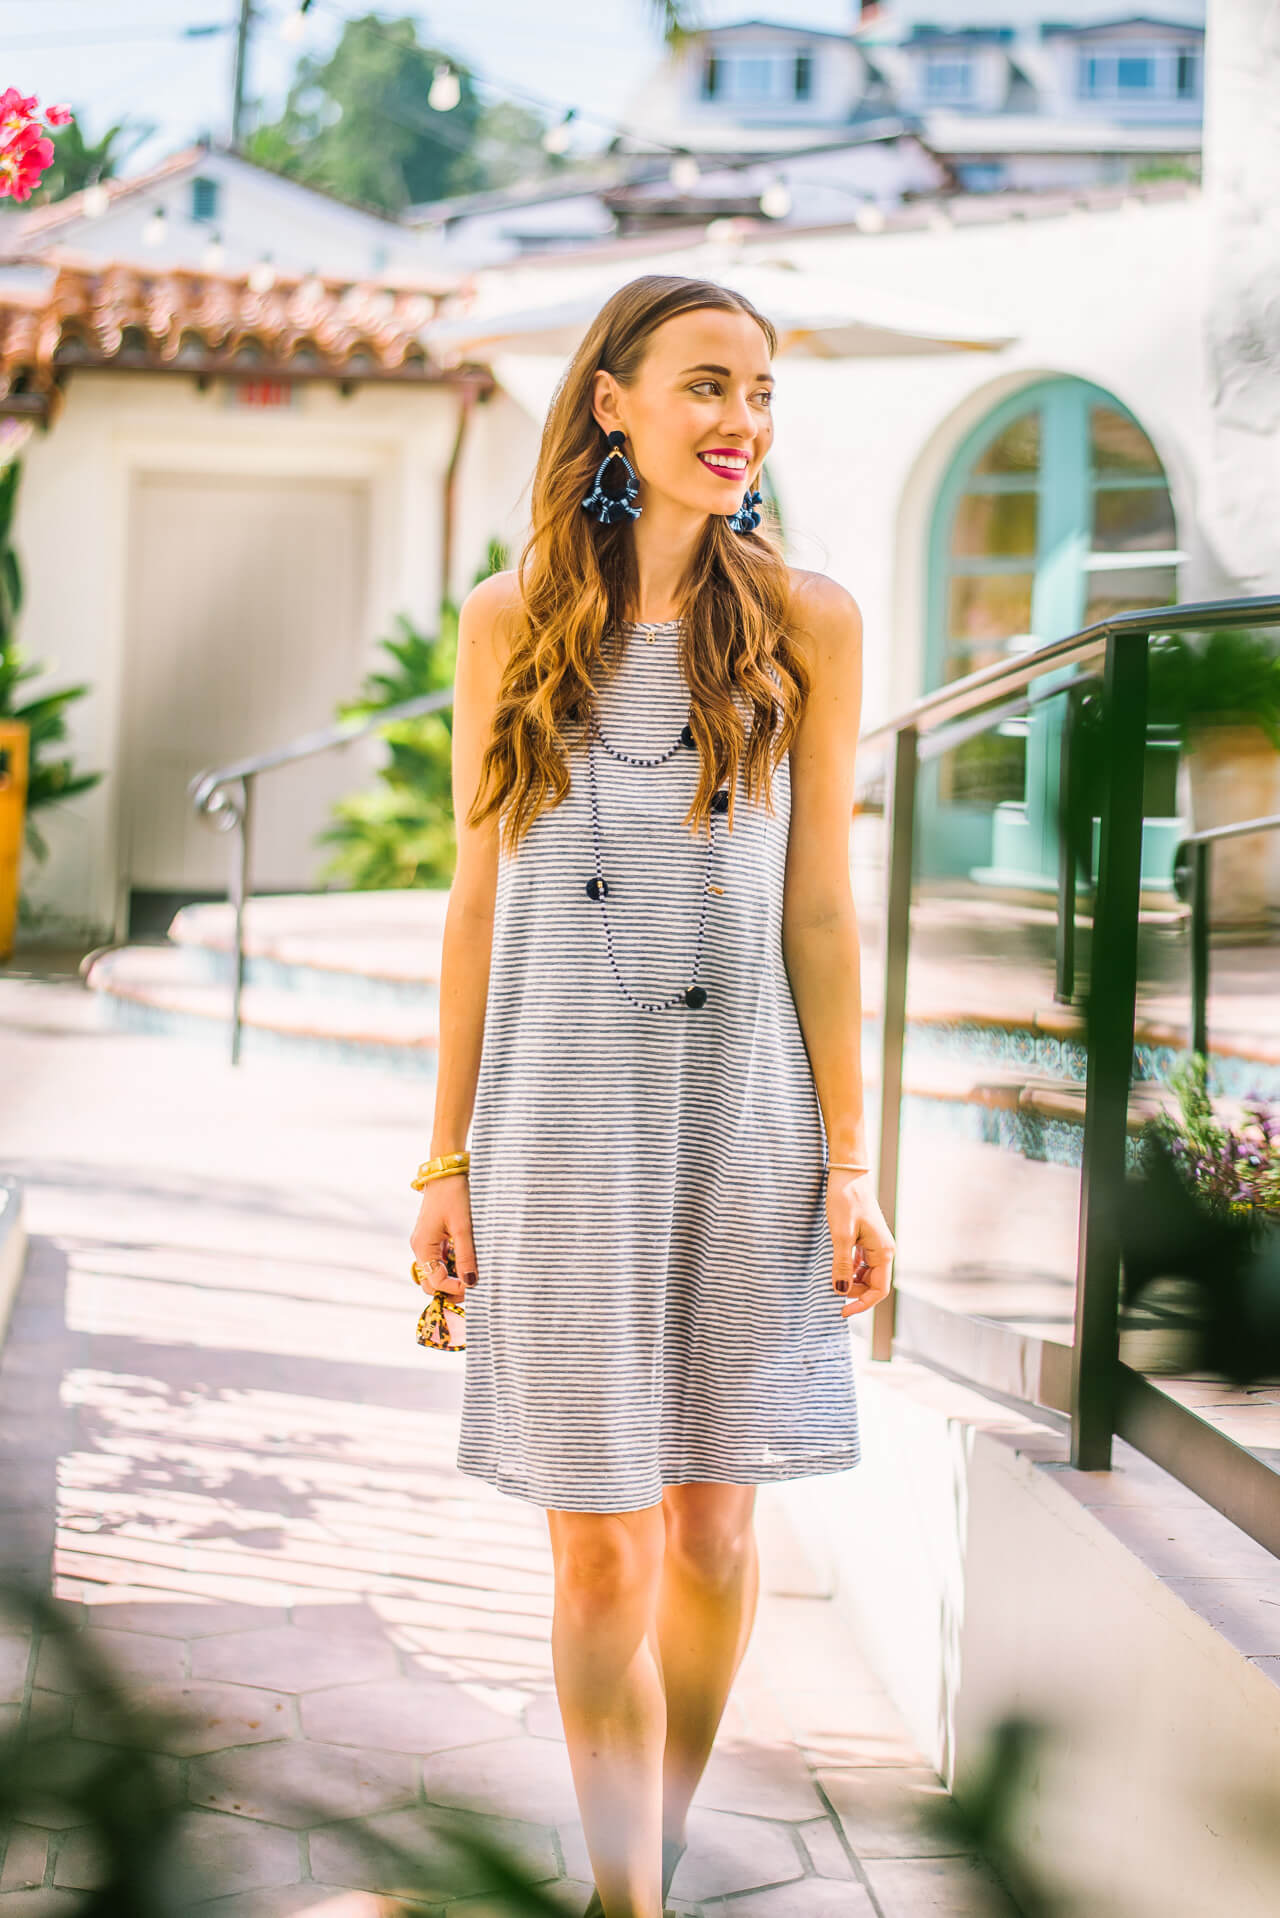 Sharing this adorable outfit on M Loves M